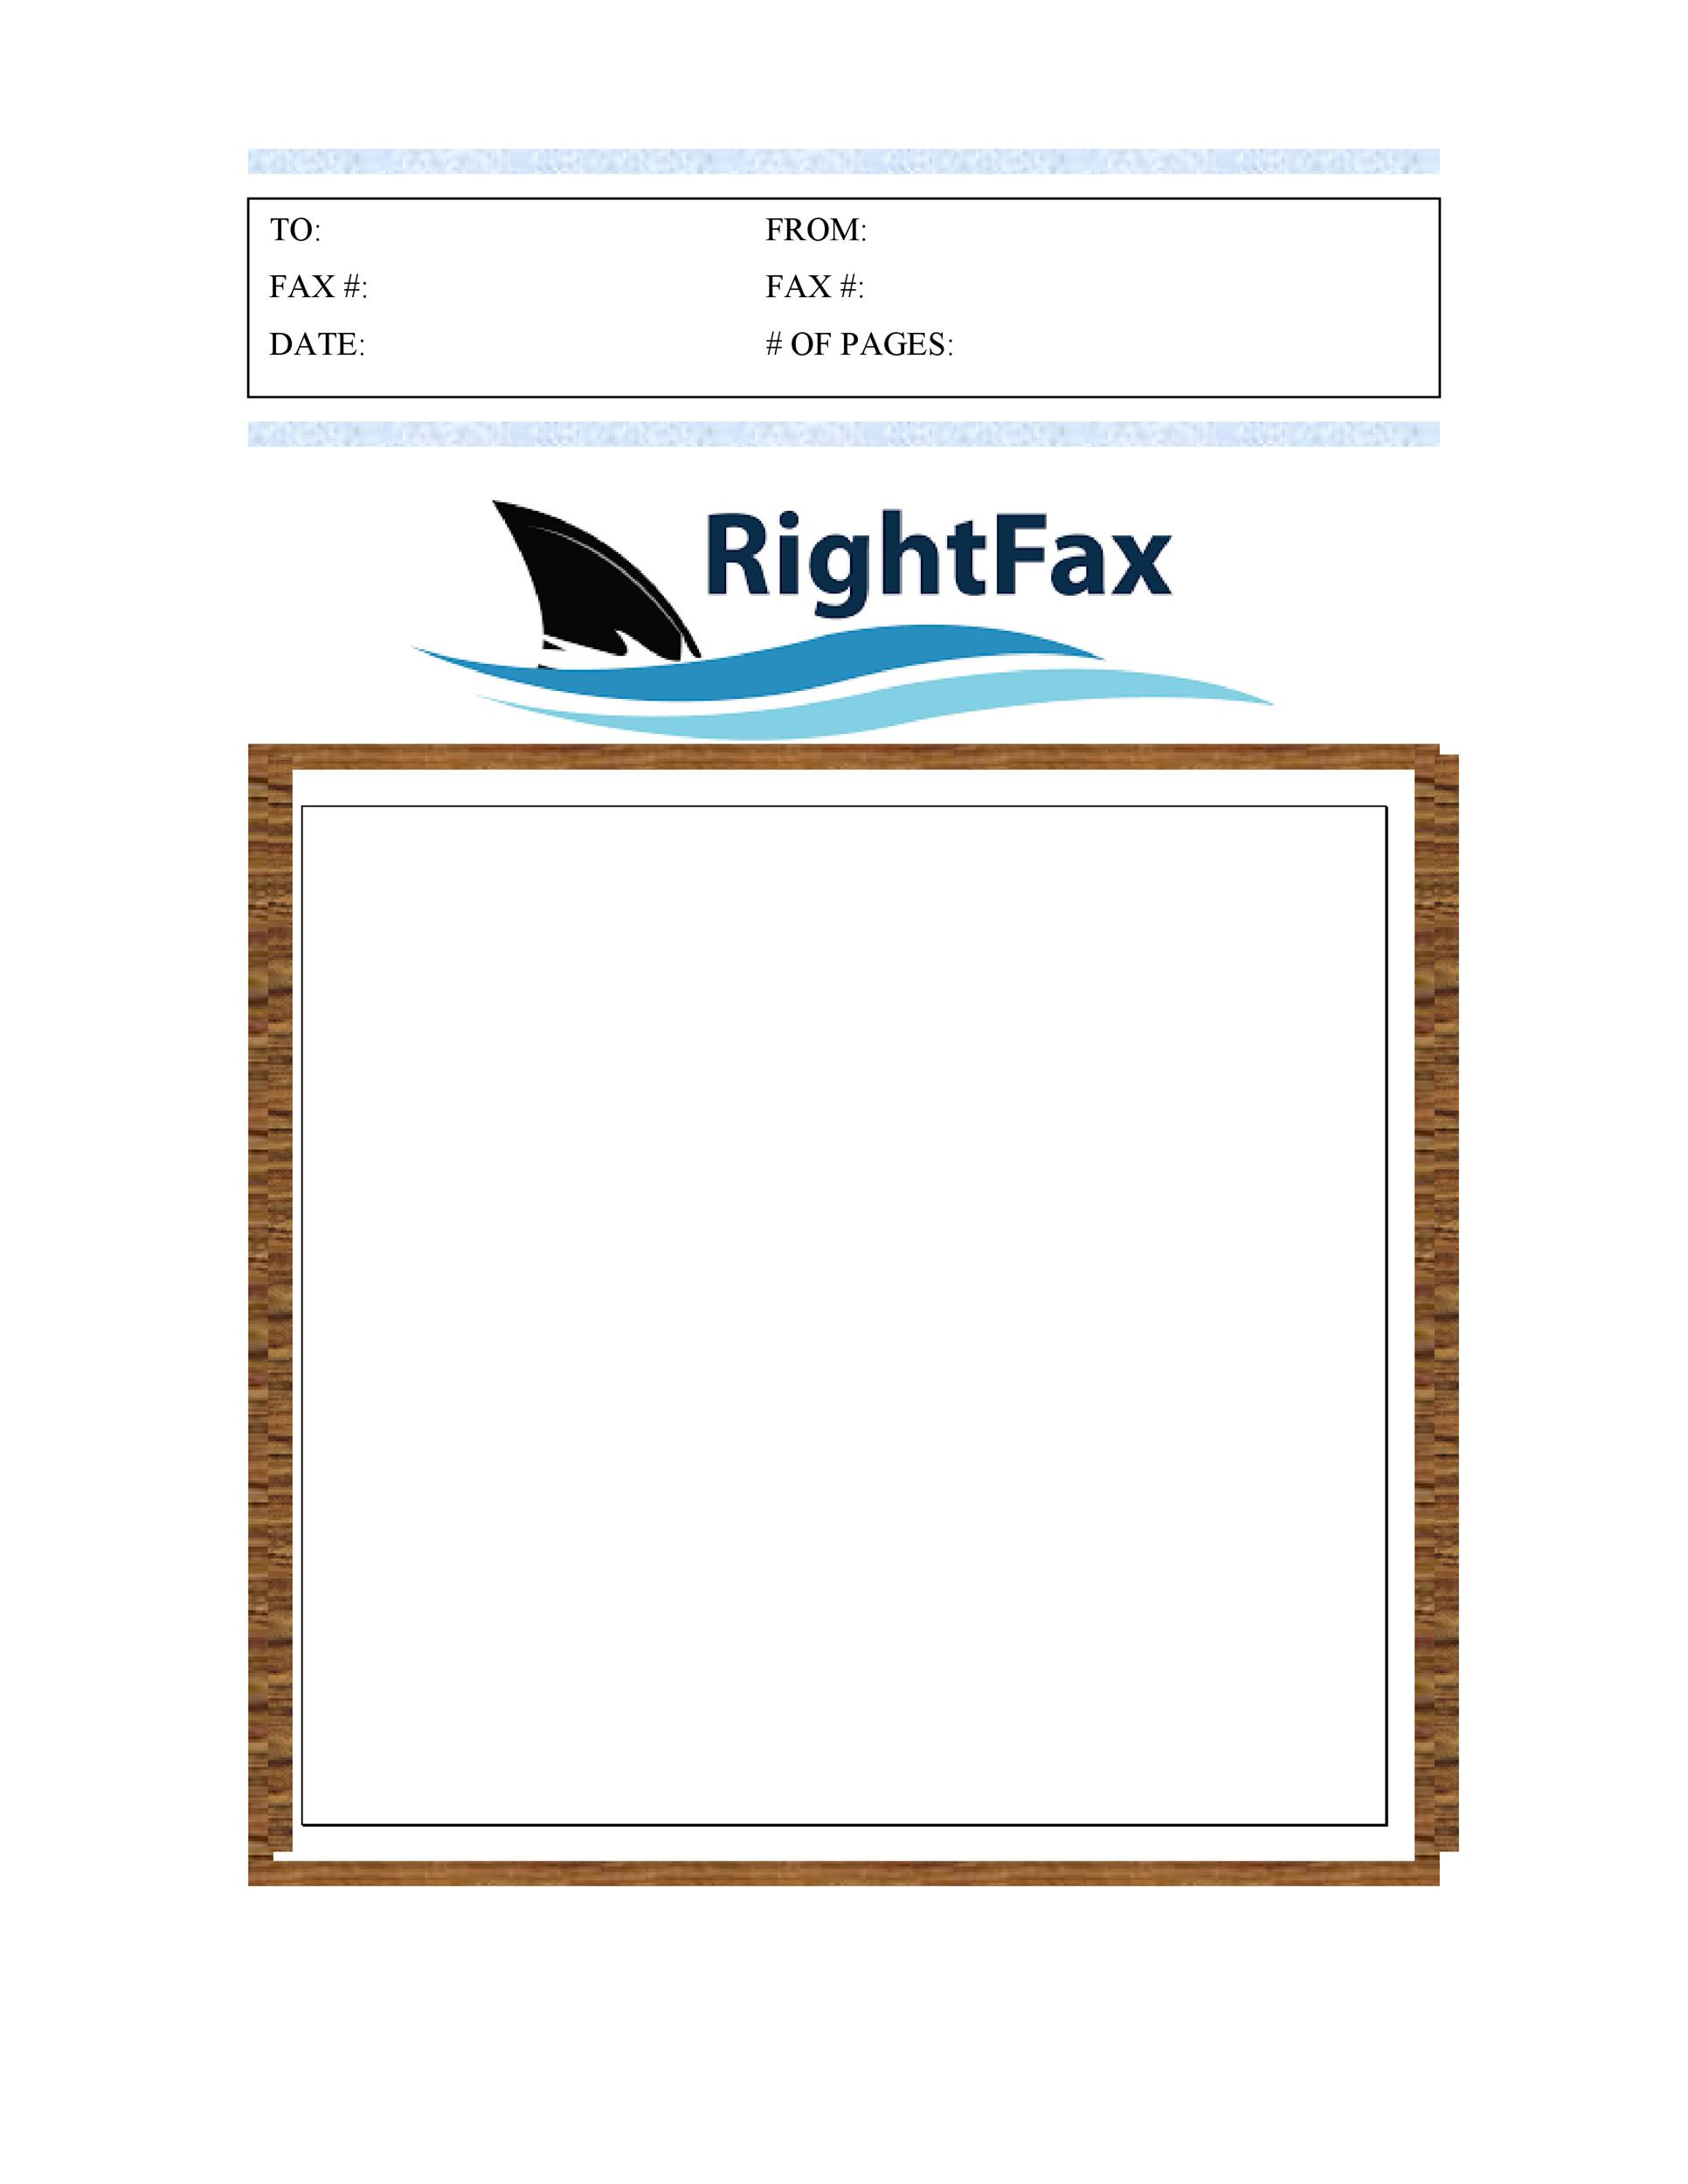 Fax Cover Sheet Template 31